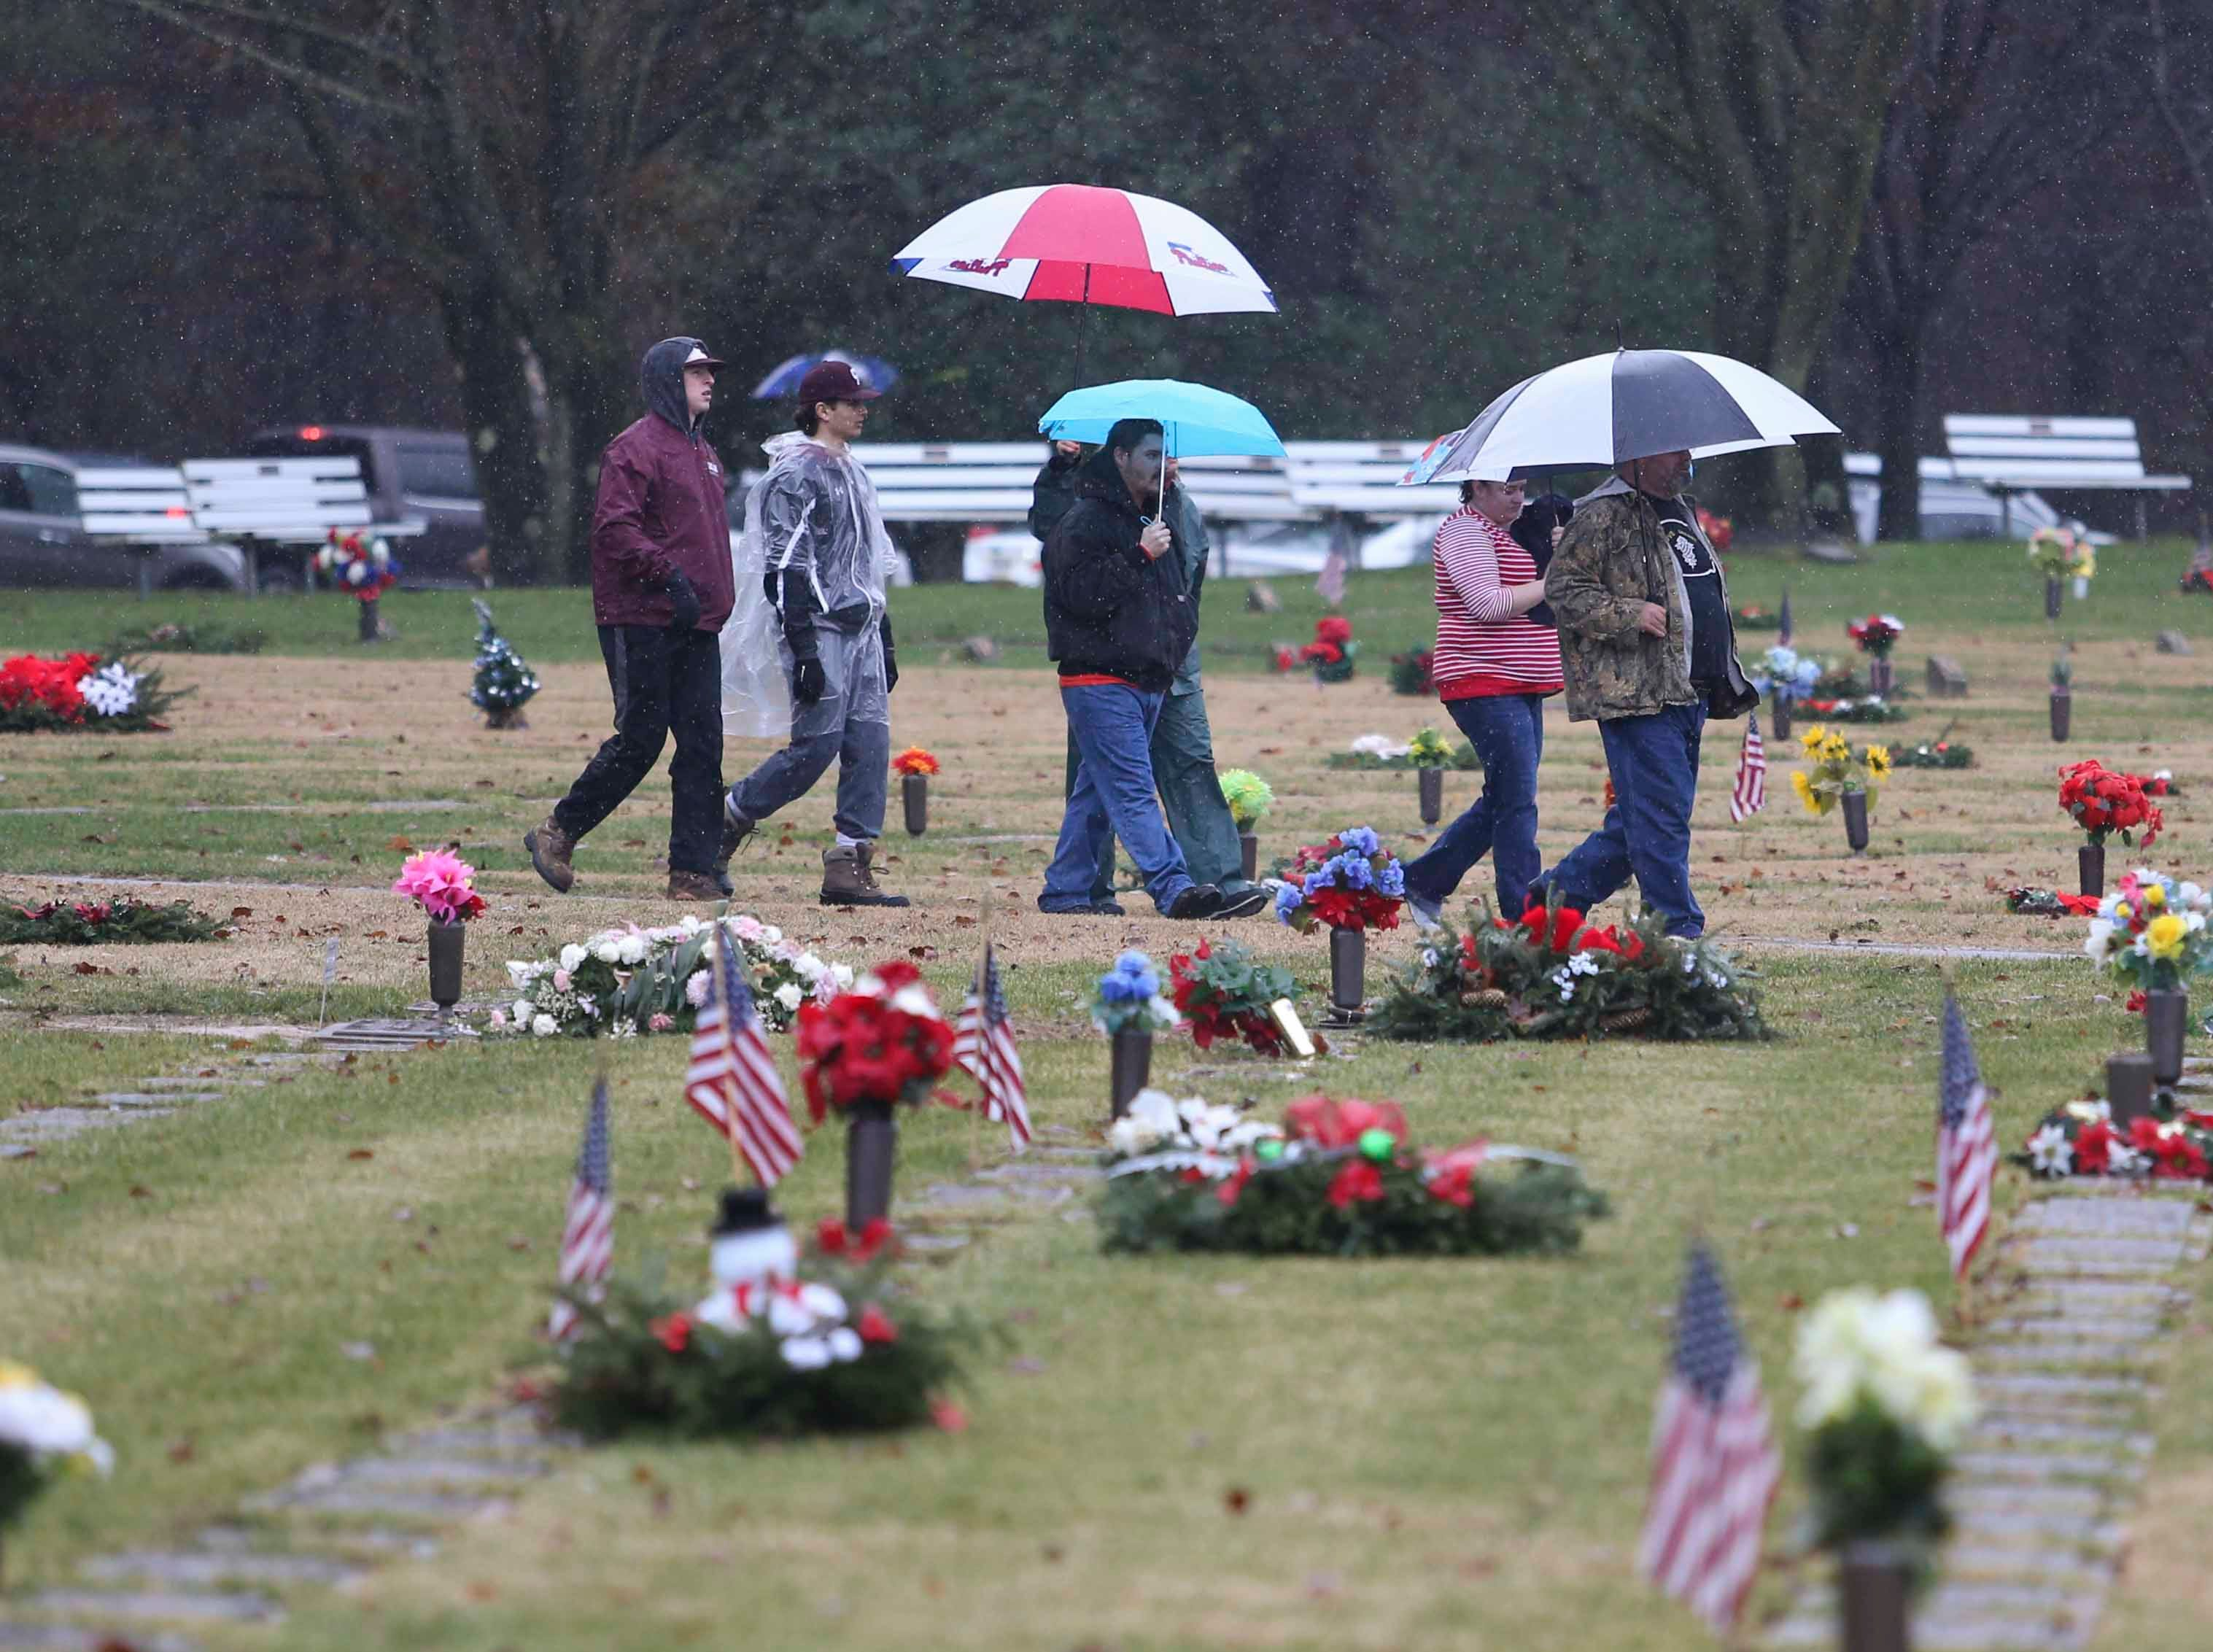 Volunteers arrive as a couple thousand people brave rainy weather to decorate graves at the Delaware Veterans Memorial Cemetery in Bear as part of Wreaths Across America Saturday. The effort was duplicated at the state veterans memorial cemetery in Millsboro and throughout the nation at more than 1400 locations Saturday.